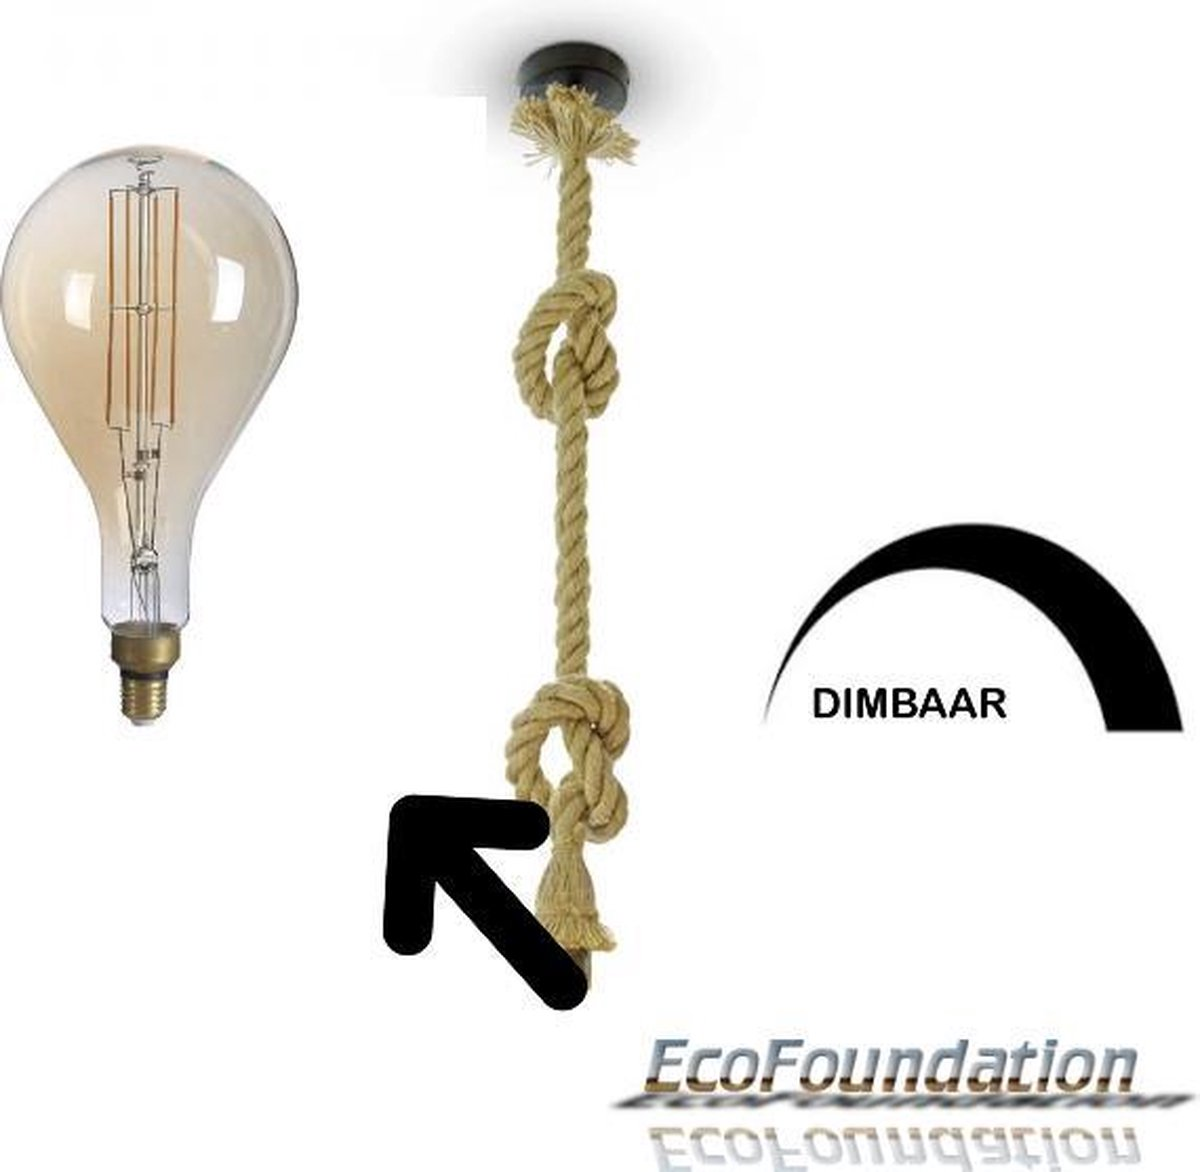 Bamboe-Touw hanglamp -1,5M-E27-Incl. Dimbare design filament LED PS160 in extra warm wit - 1800K